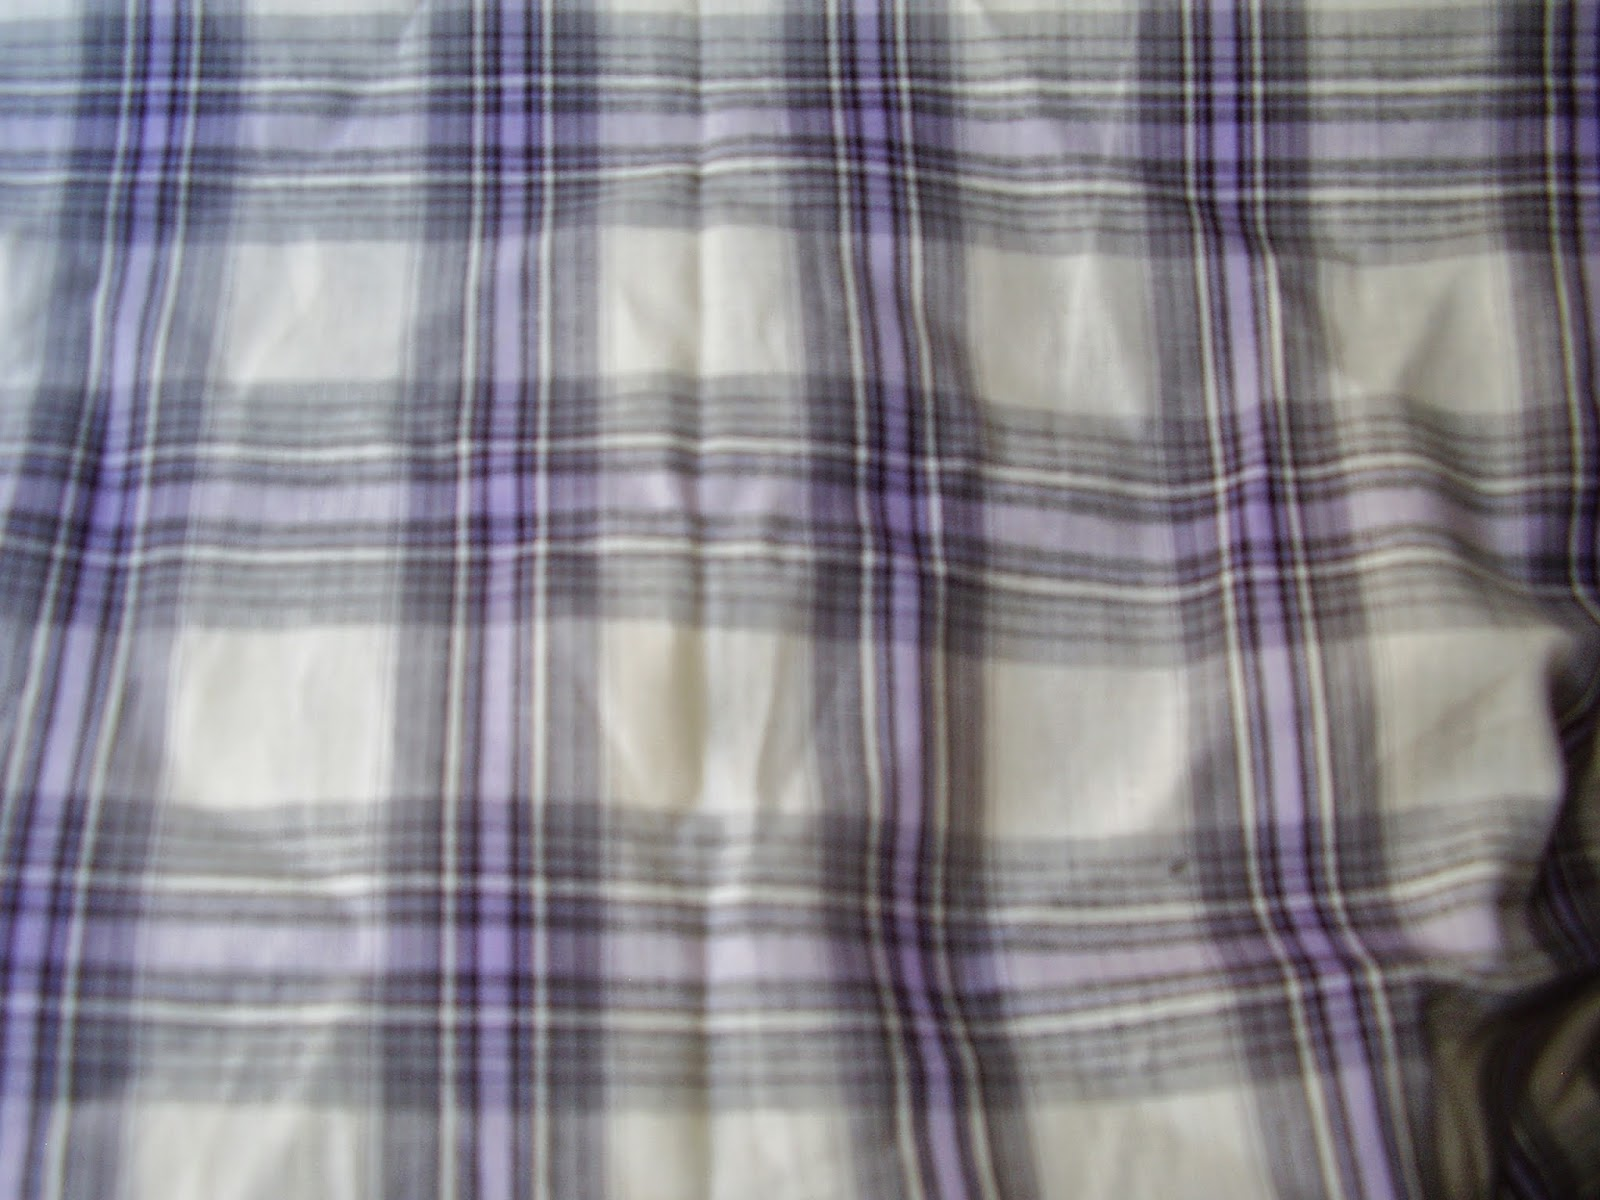 White, grey and purple paid shirting-weight cotton.